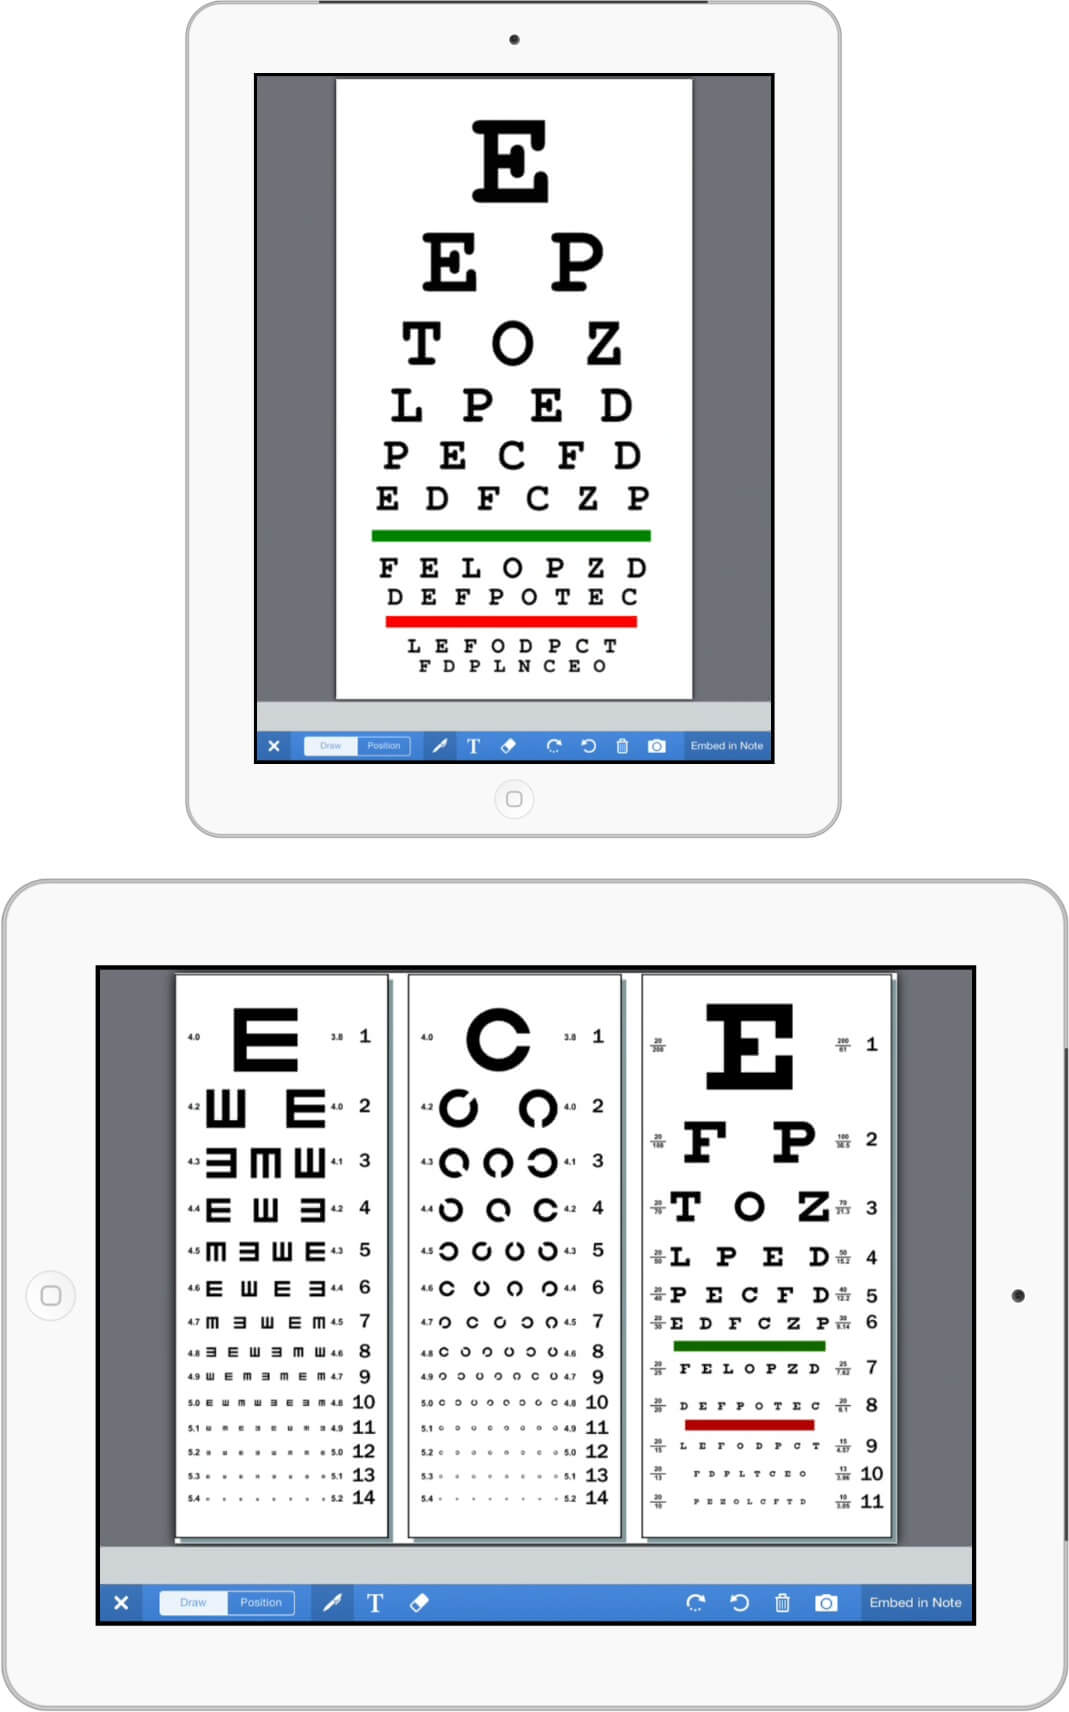 eye charts on iPad in drchrono cloud based EHR